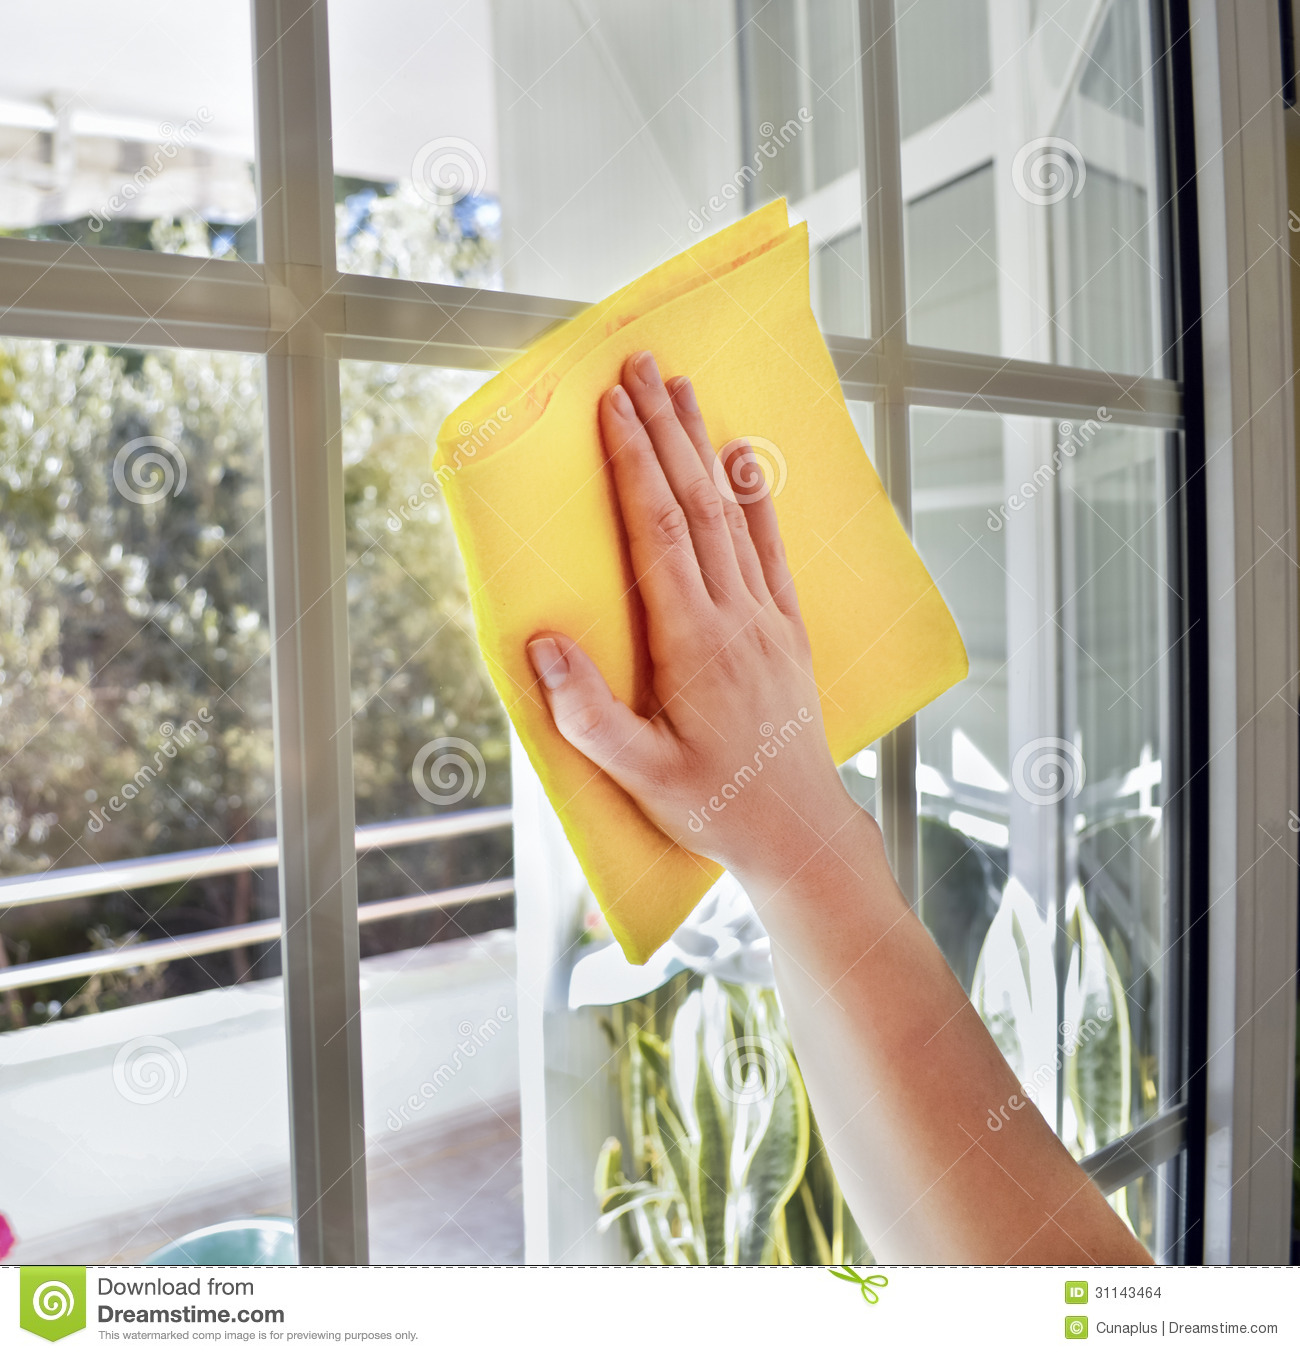 Limpiar Baño Amarillo:Window Cleaning Cloths